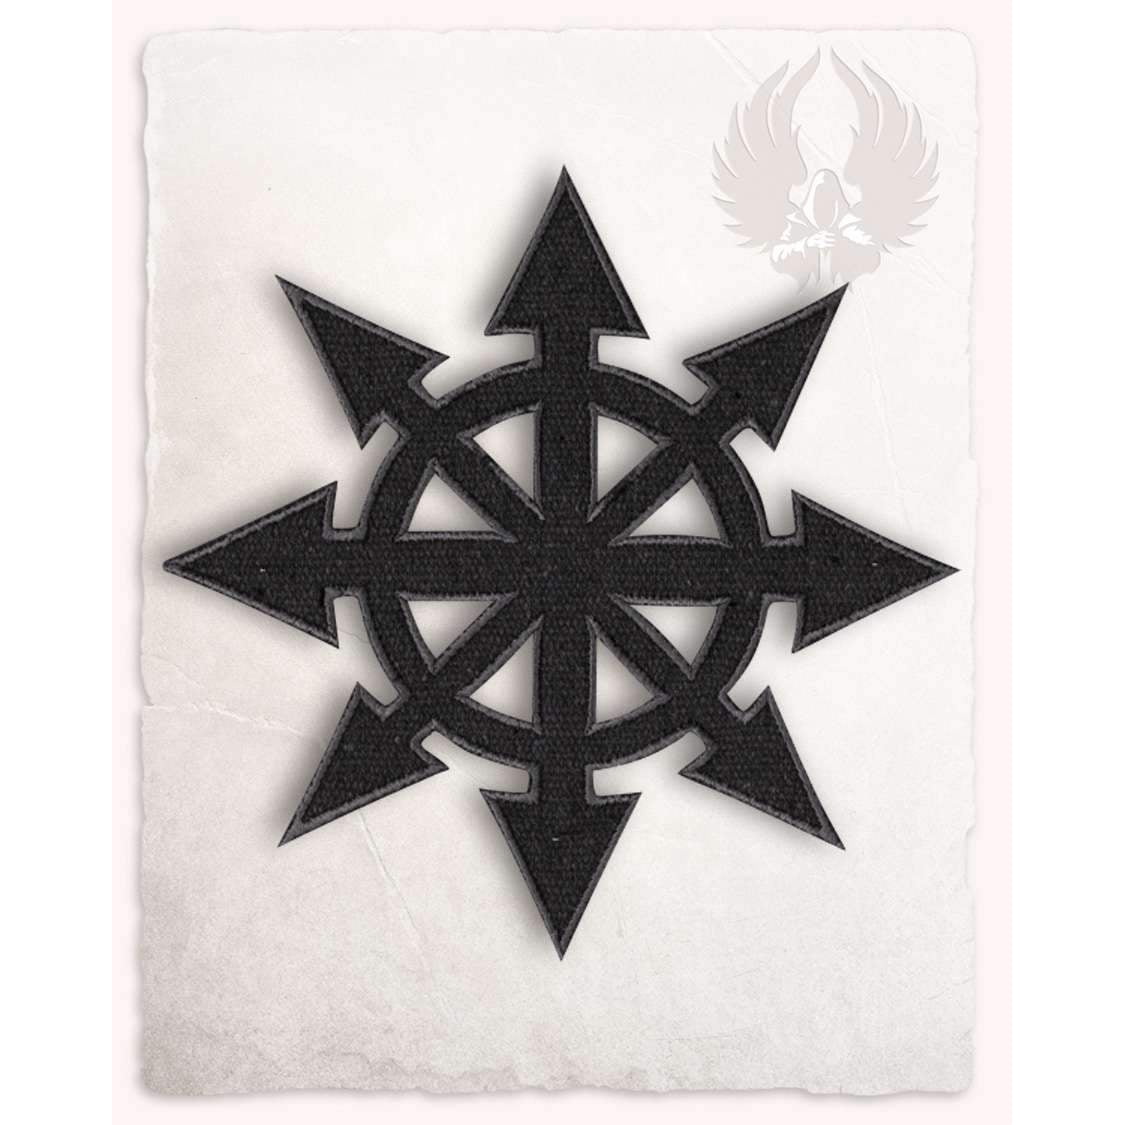 Chaos star patch